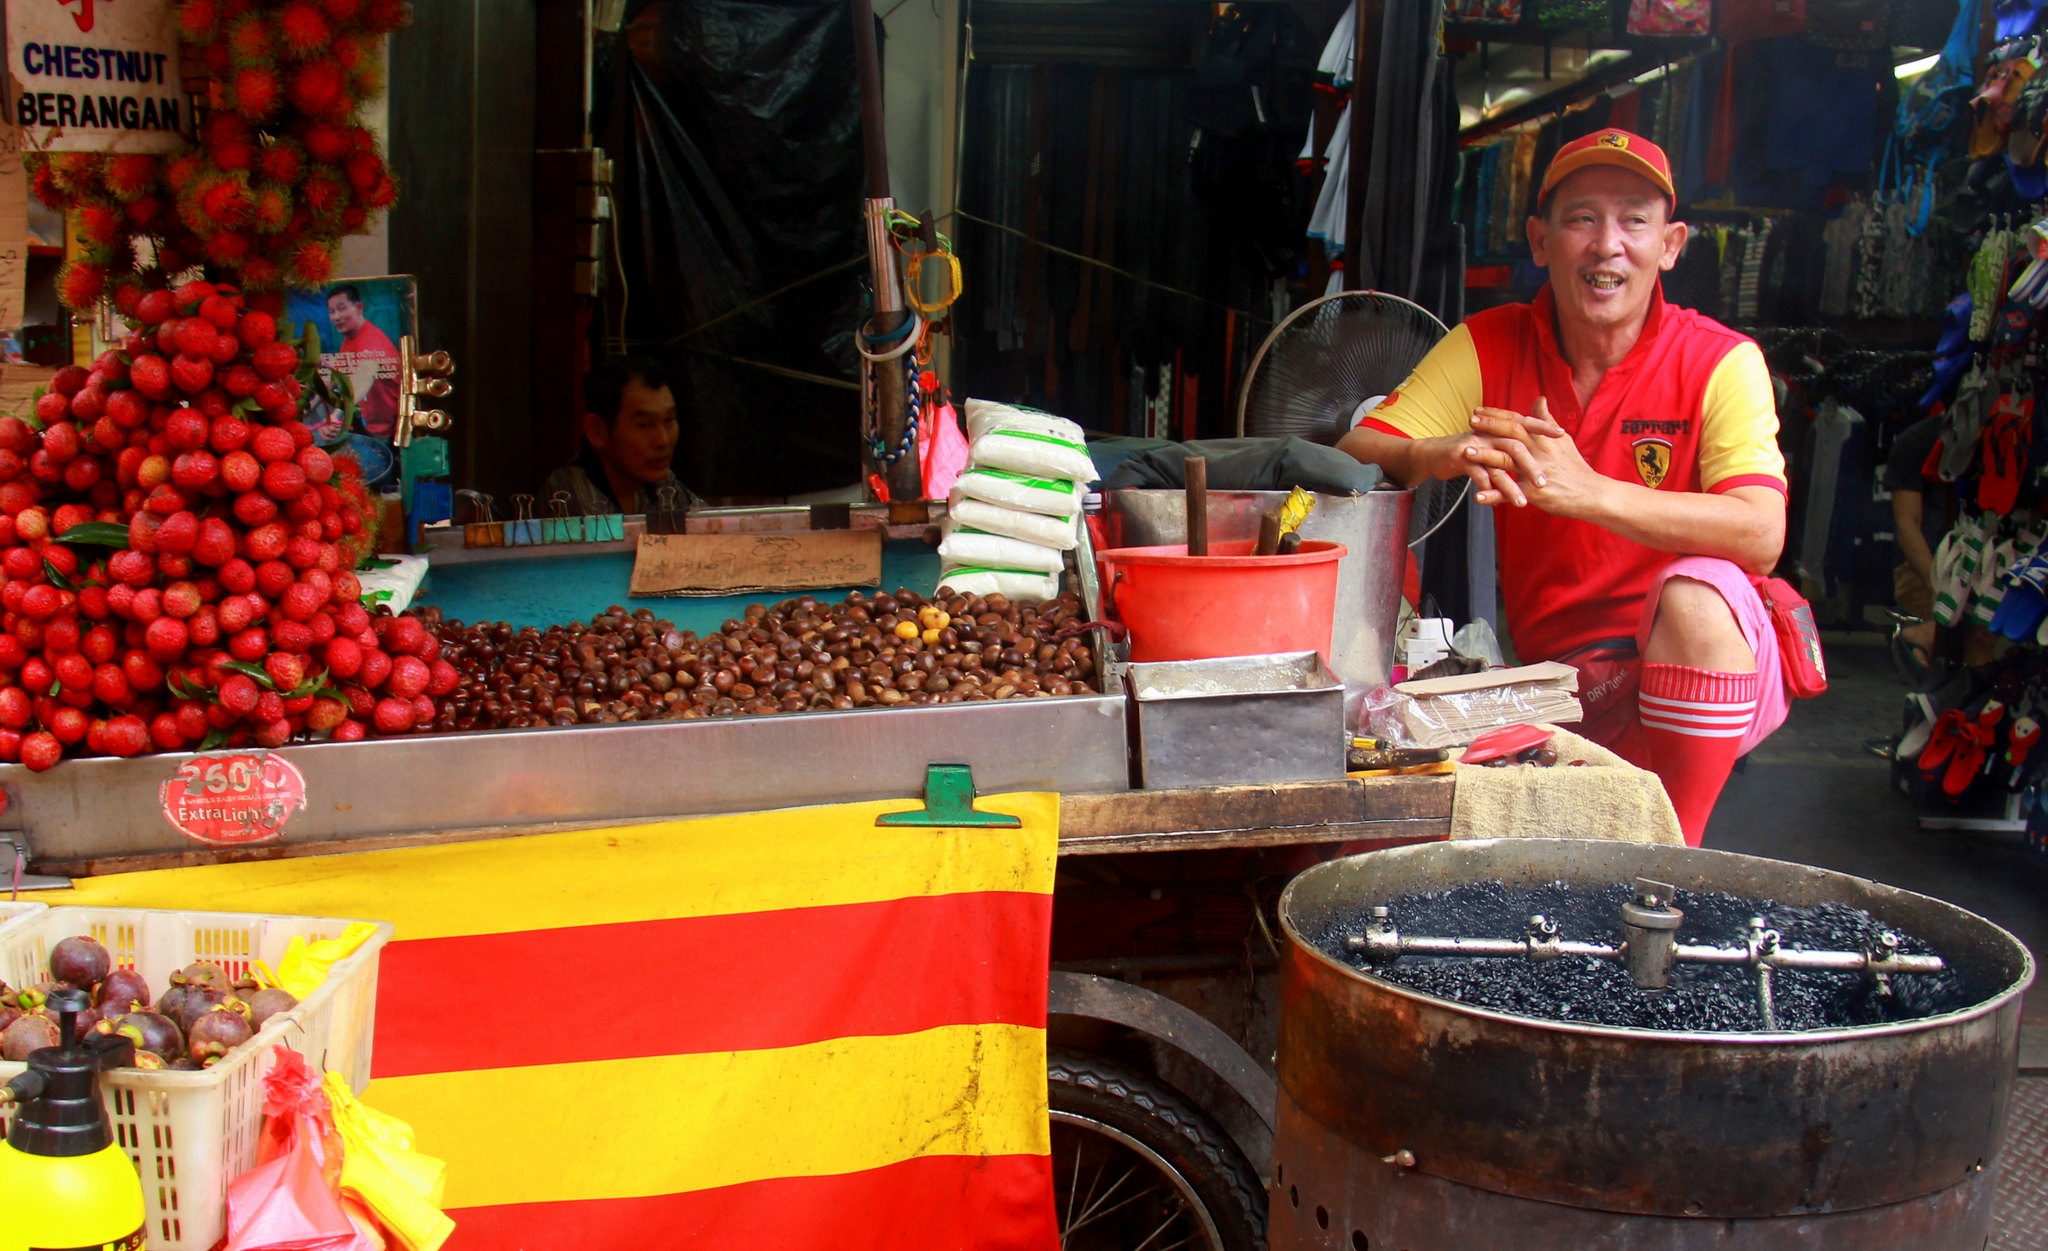 Chestnut seller at Chinatown in Kuala Lumpur